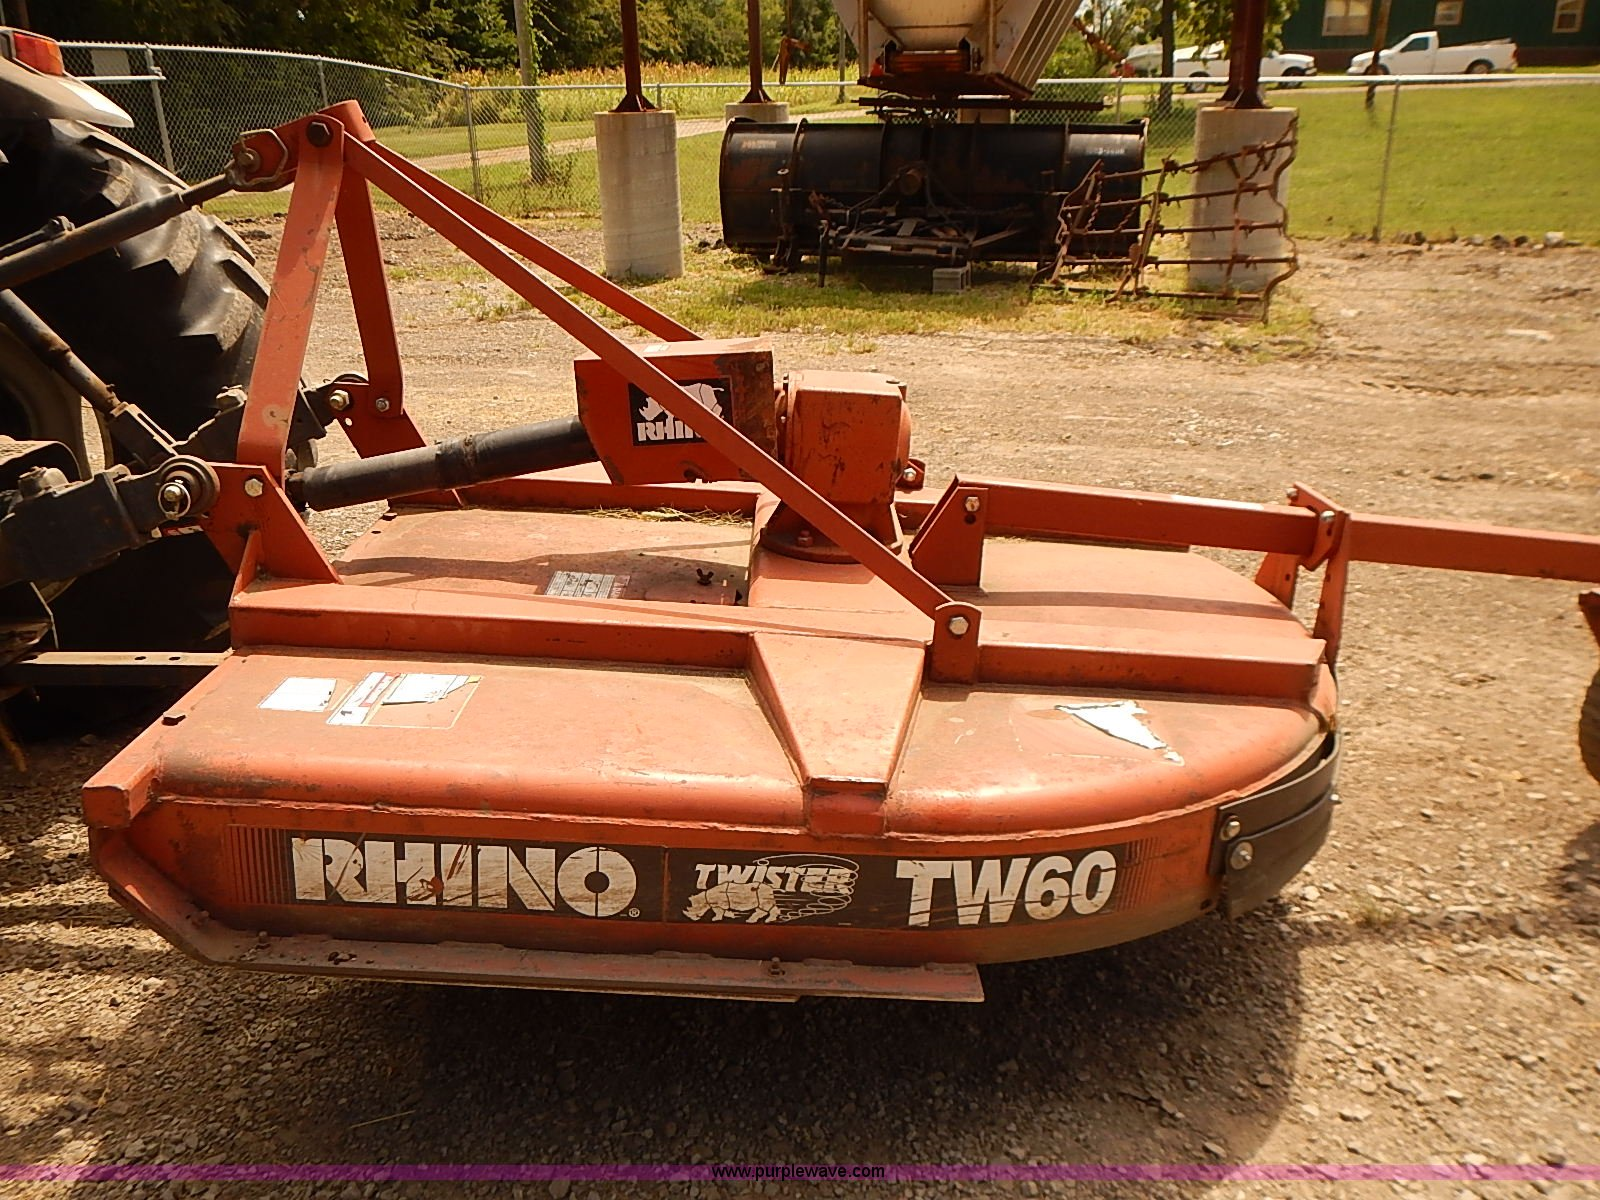 Rhino TW60 rotary mower | Item BA9575 | SOLD! September 9 Go